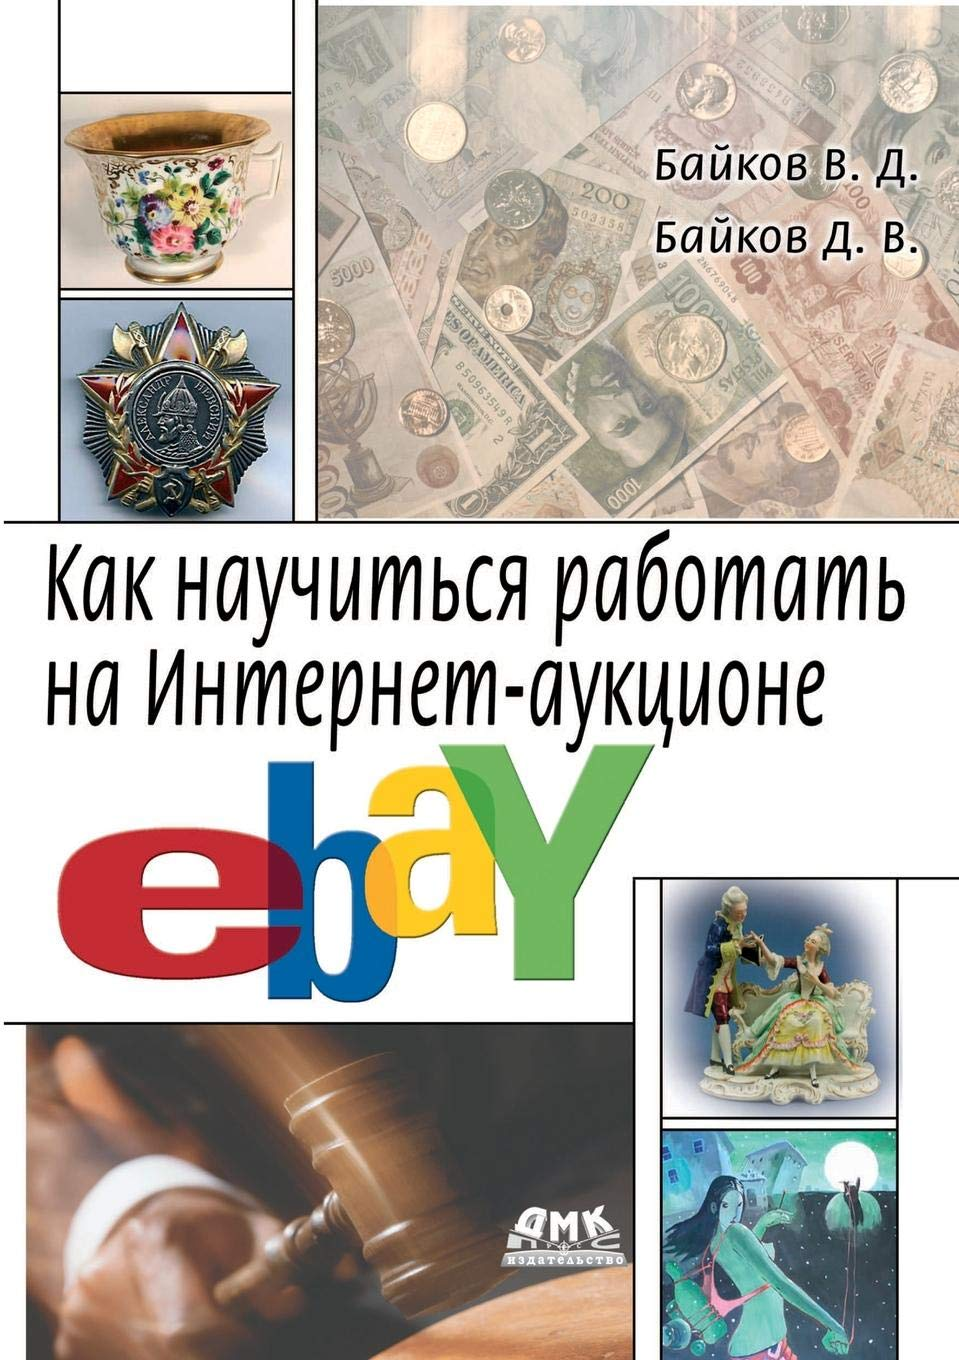 How To Learn To Work On The Ebay Online Auction Russian Edition Bajkov V 9785519529877 Amazon Com Books